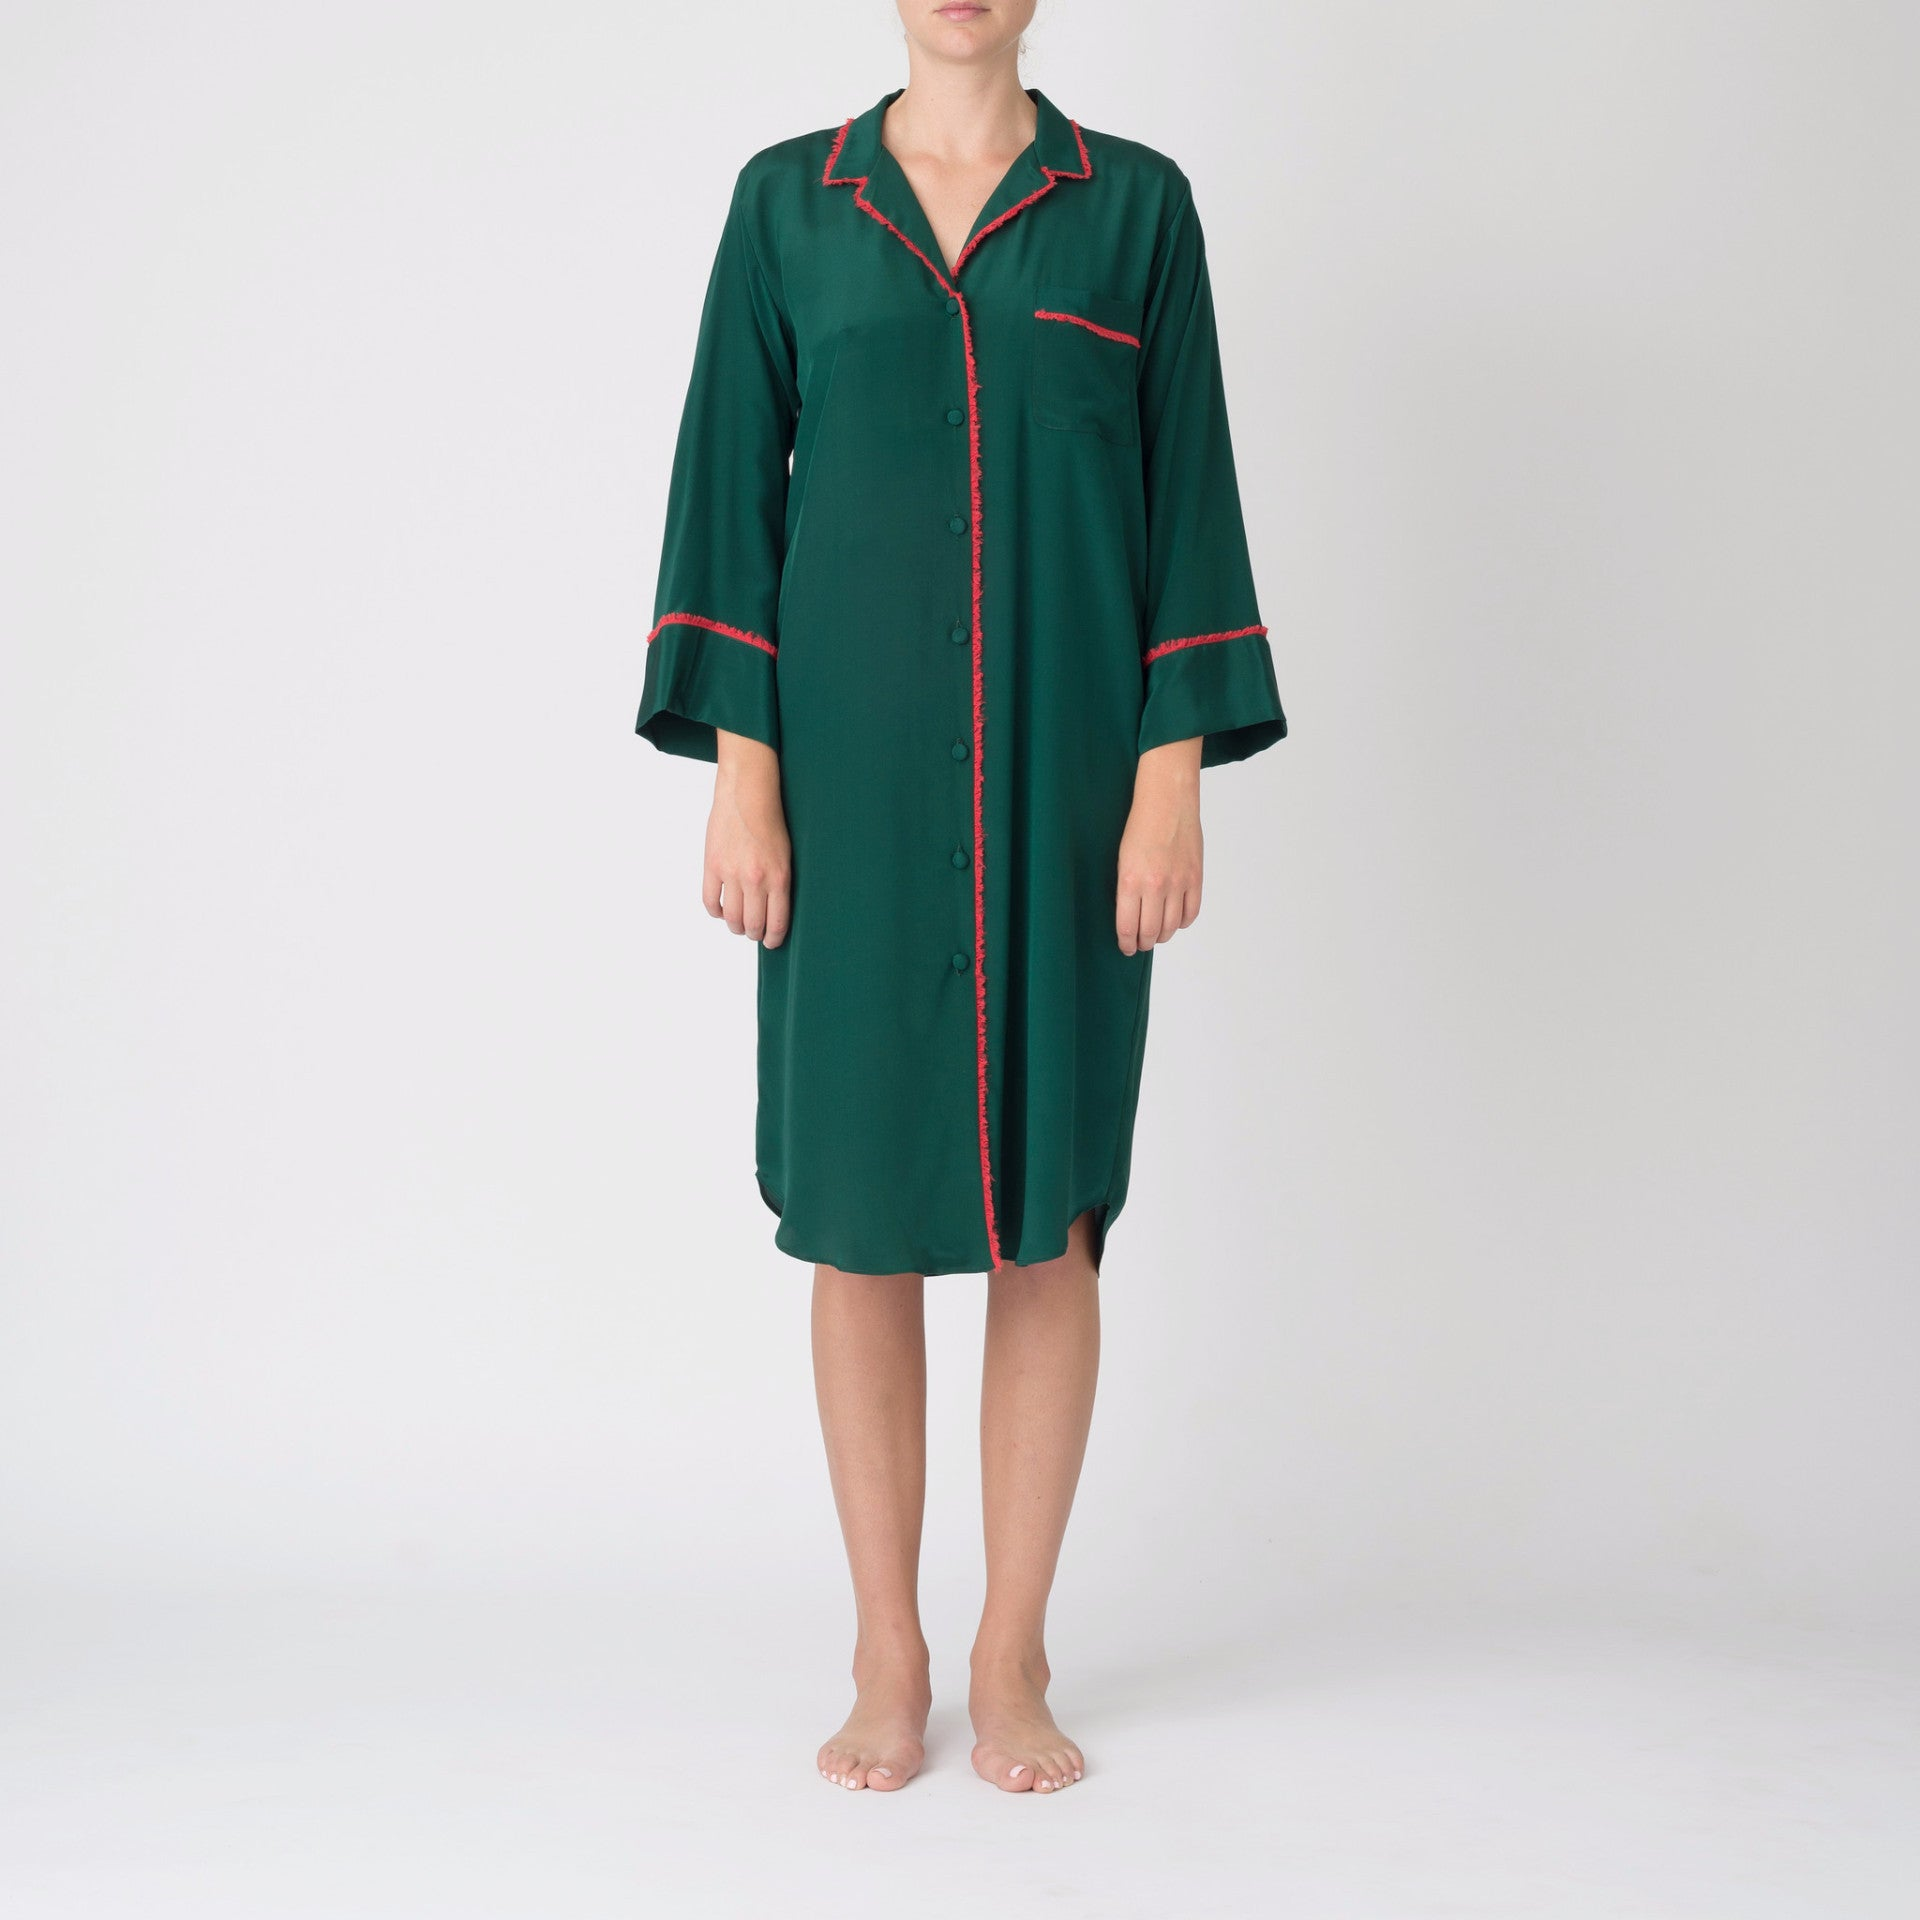 Georgia Nightshirt in Emerald with Coral Fringe